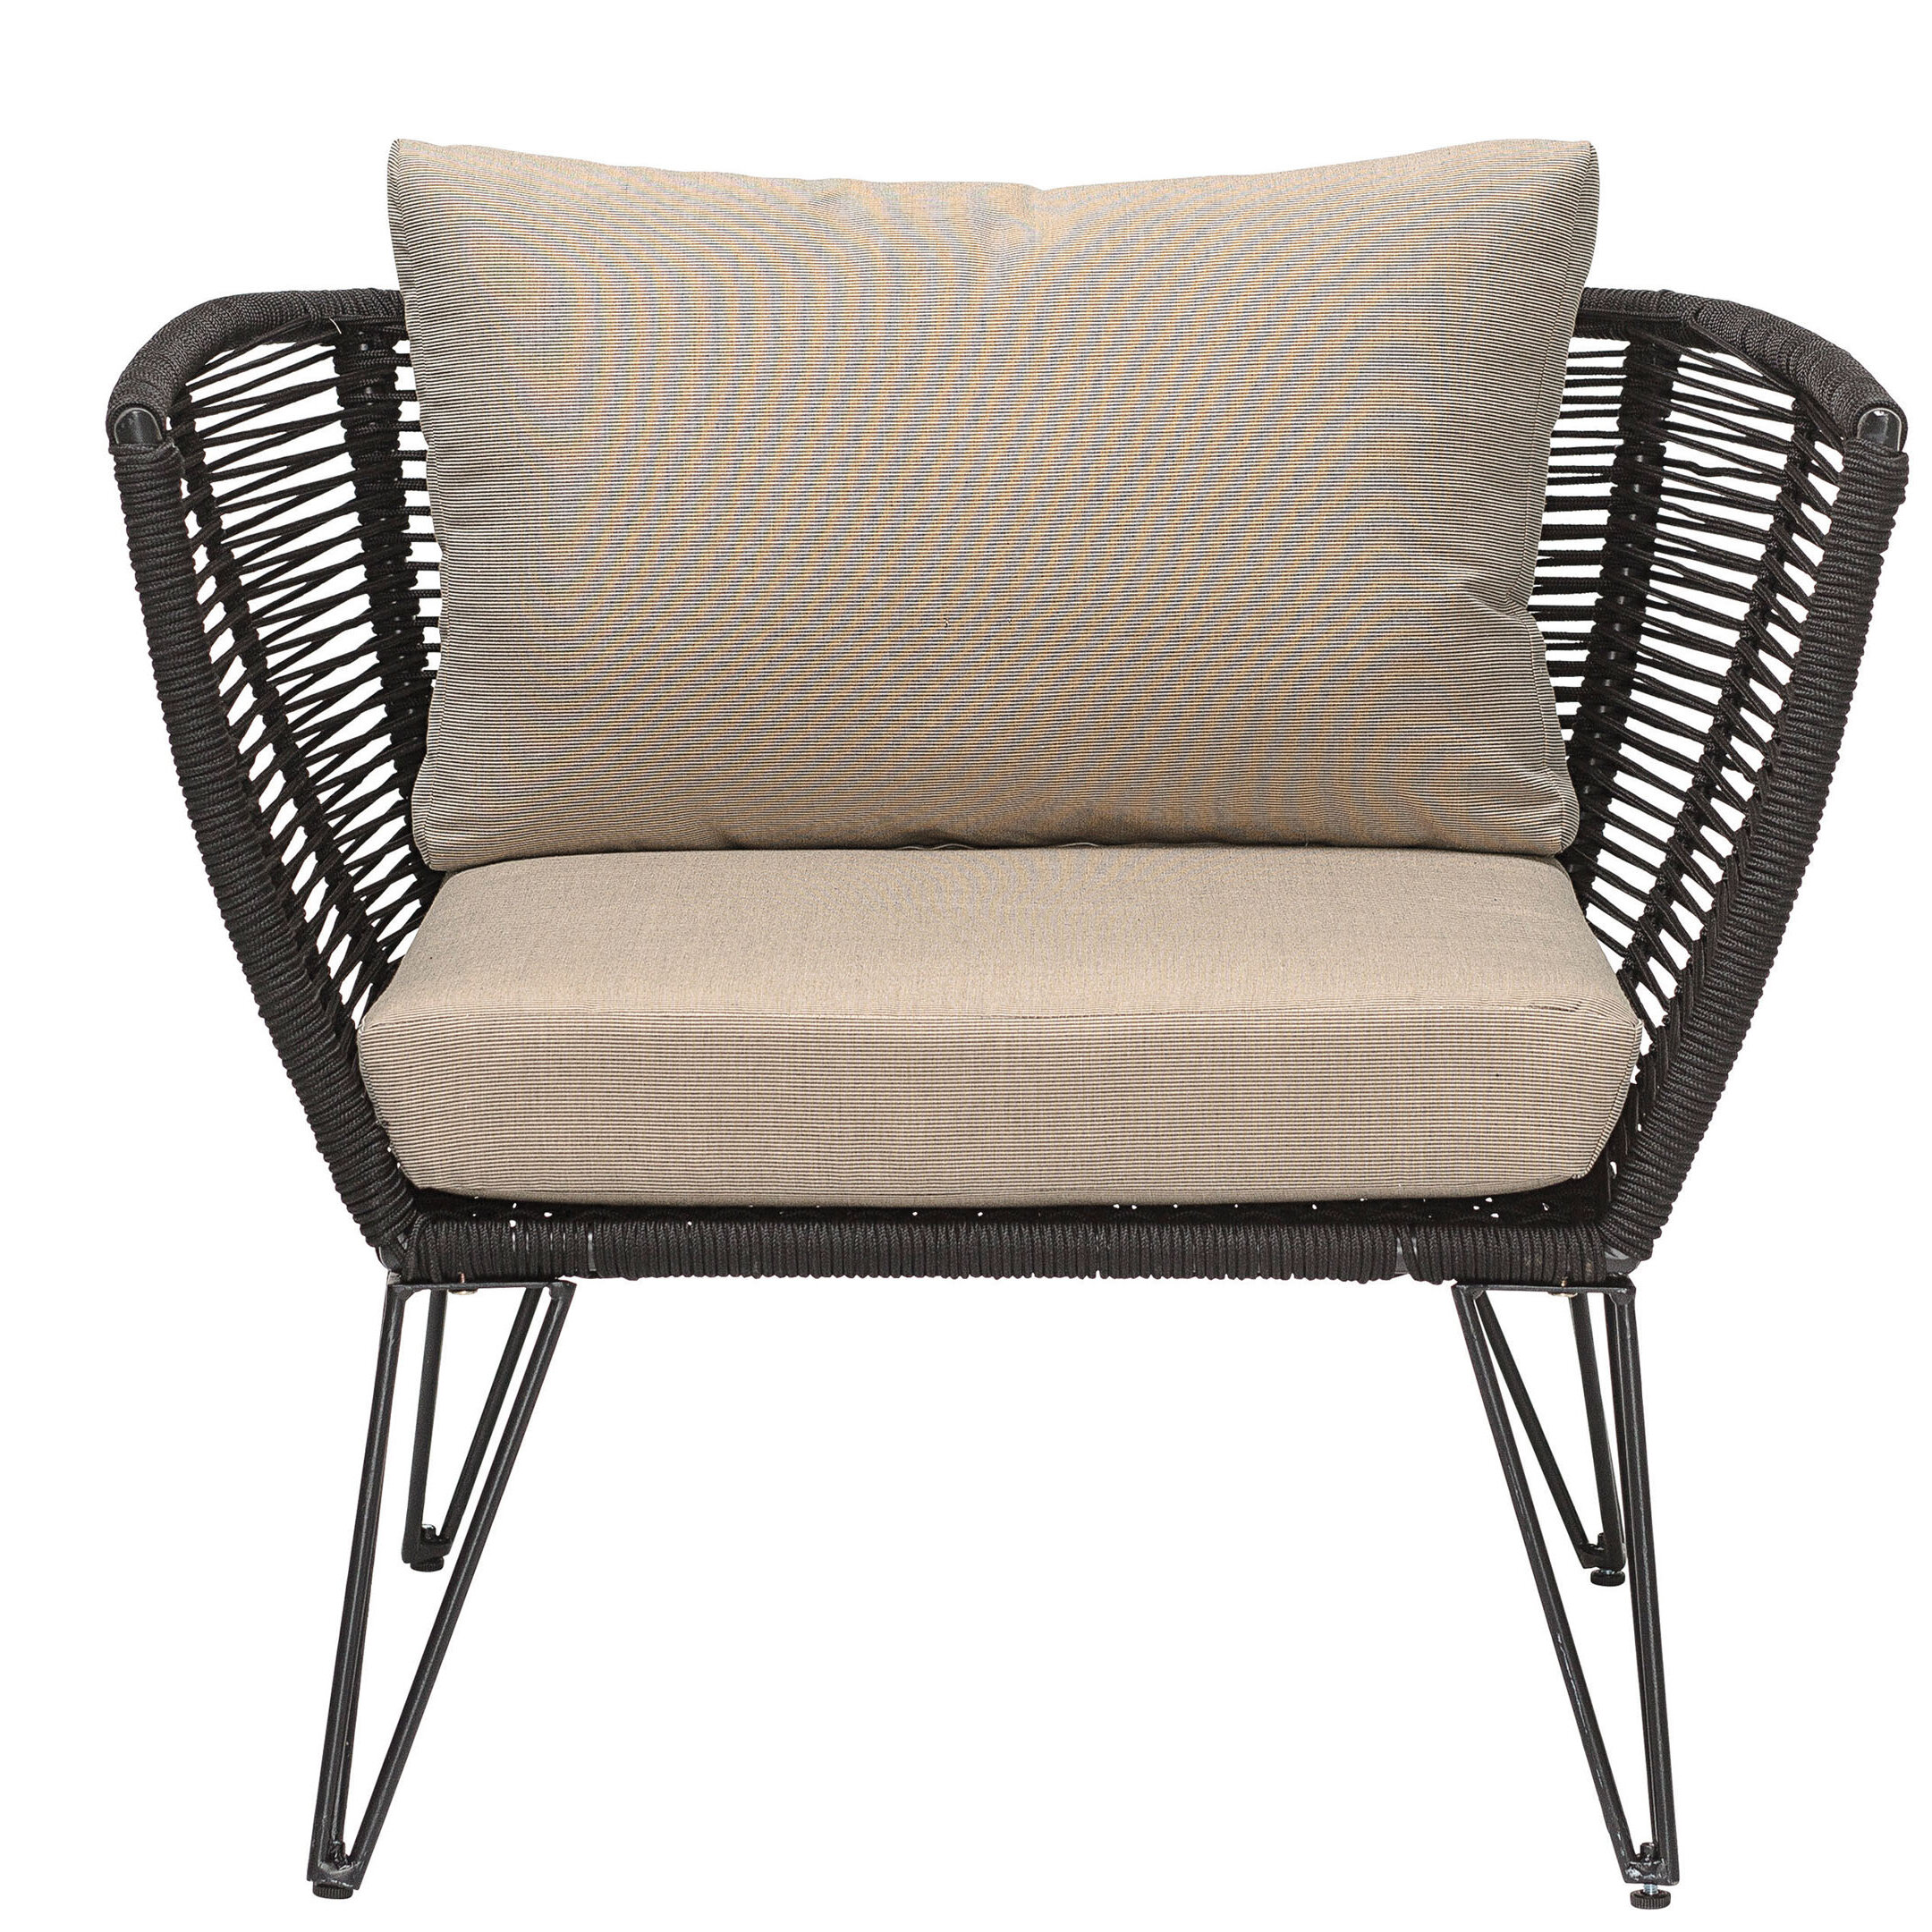 Marvelous Deanne Metal And Woven Rope Barrel Chair Allmodern Andrewgaddart Wooden Chair Designs For Living Room Andrewgaddartcom